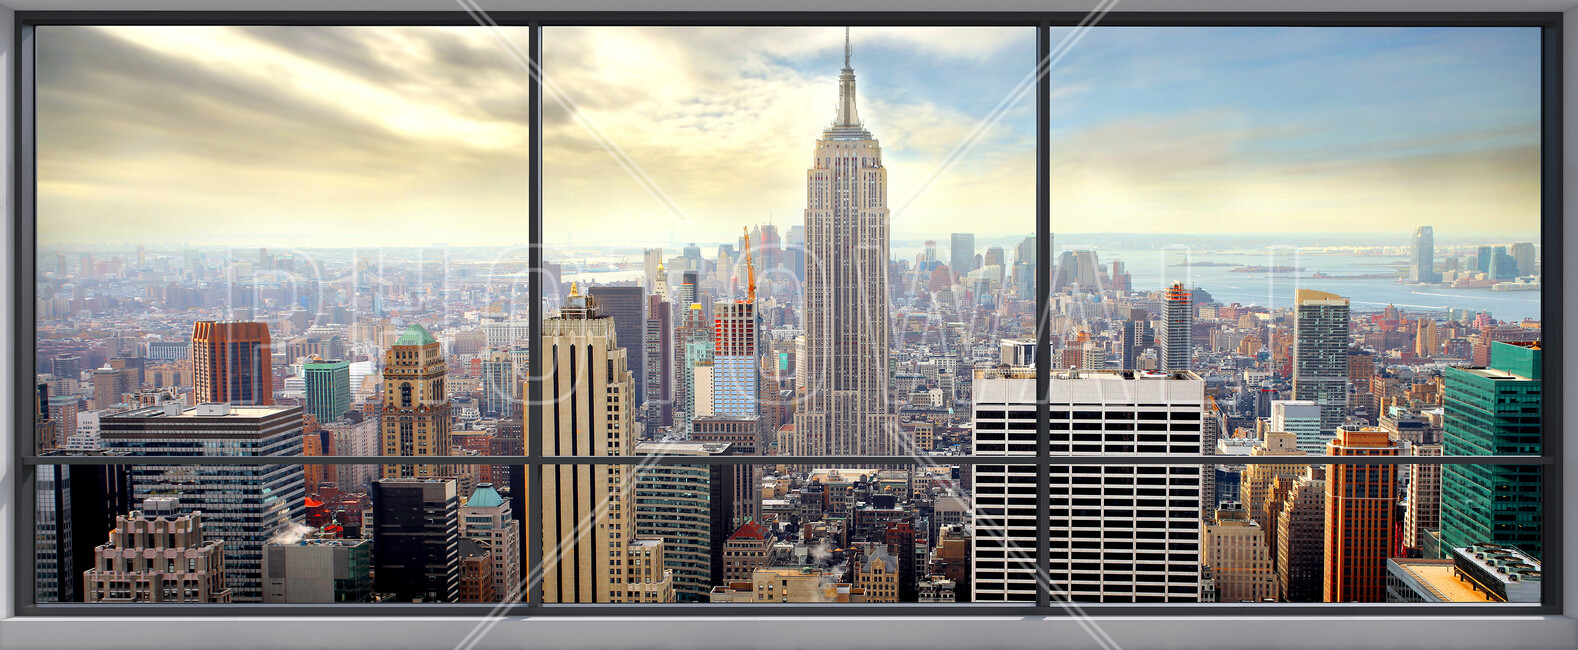 Penthouse window view wall mural photo wallpaper for Bay view wall mural